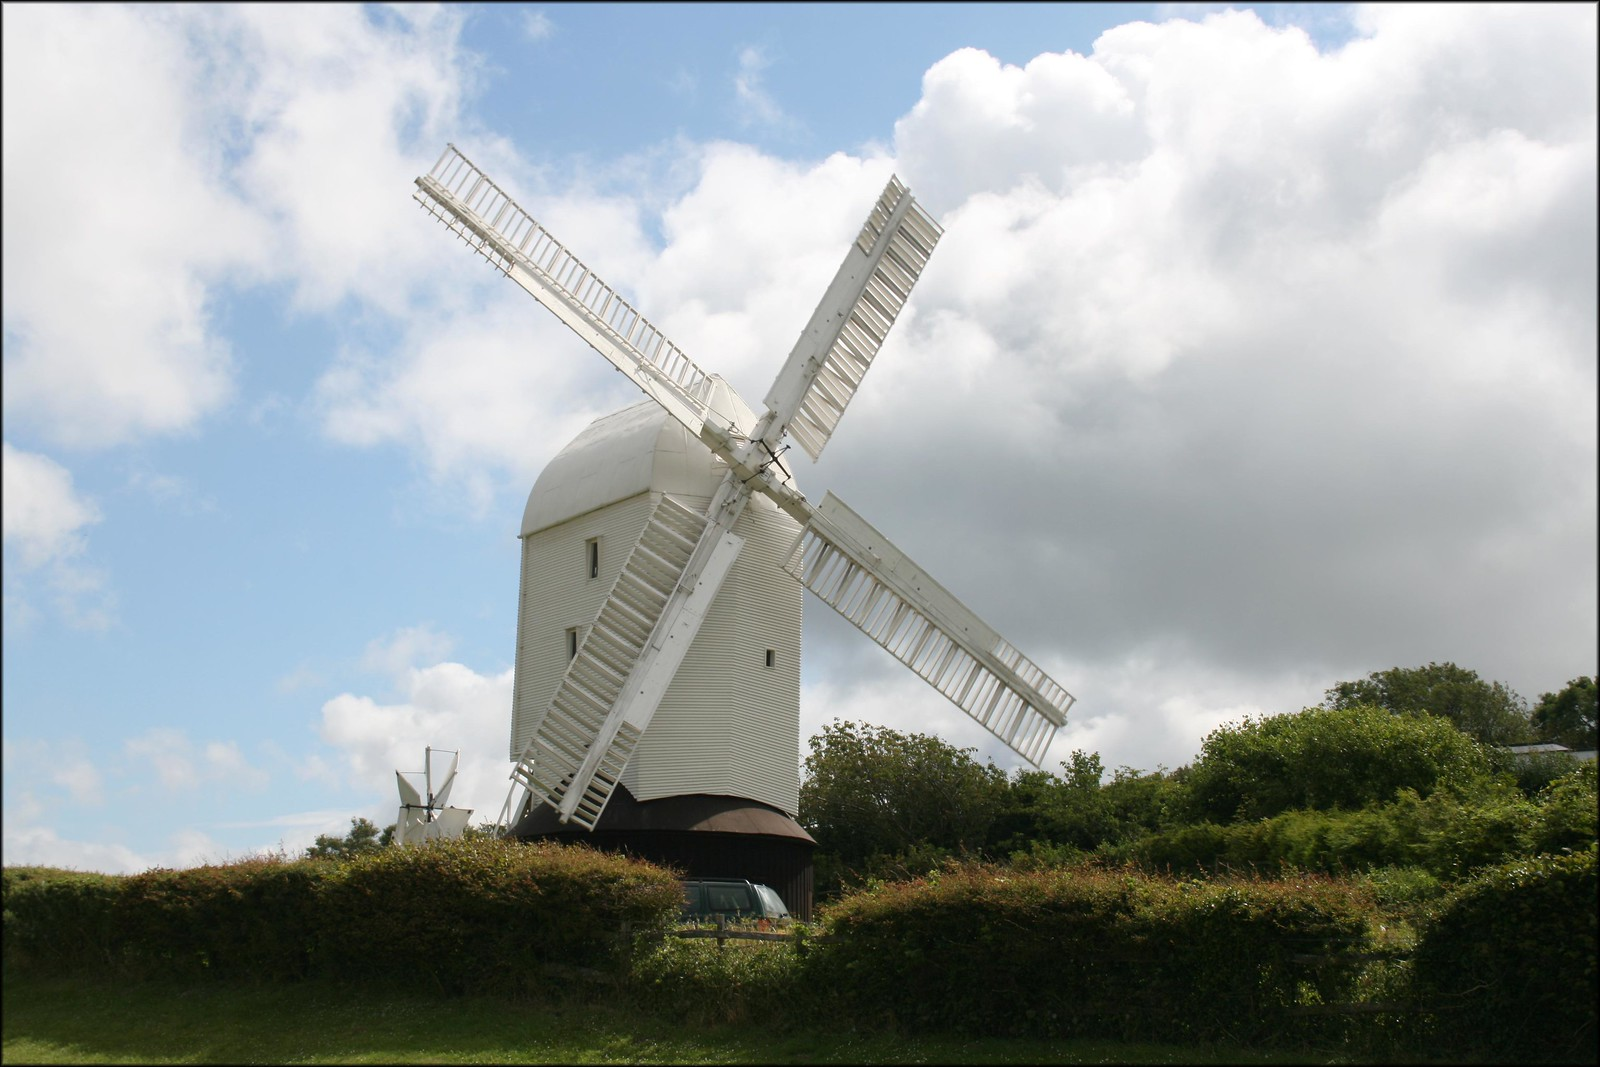 Jill windmill, Clayton The Clayton Windmills known as Jack and Jill. This one is known as Jill and was spinning when this photo was taken.